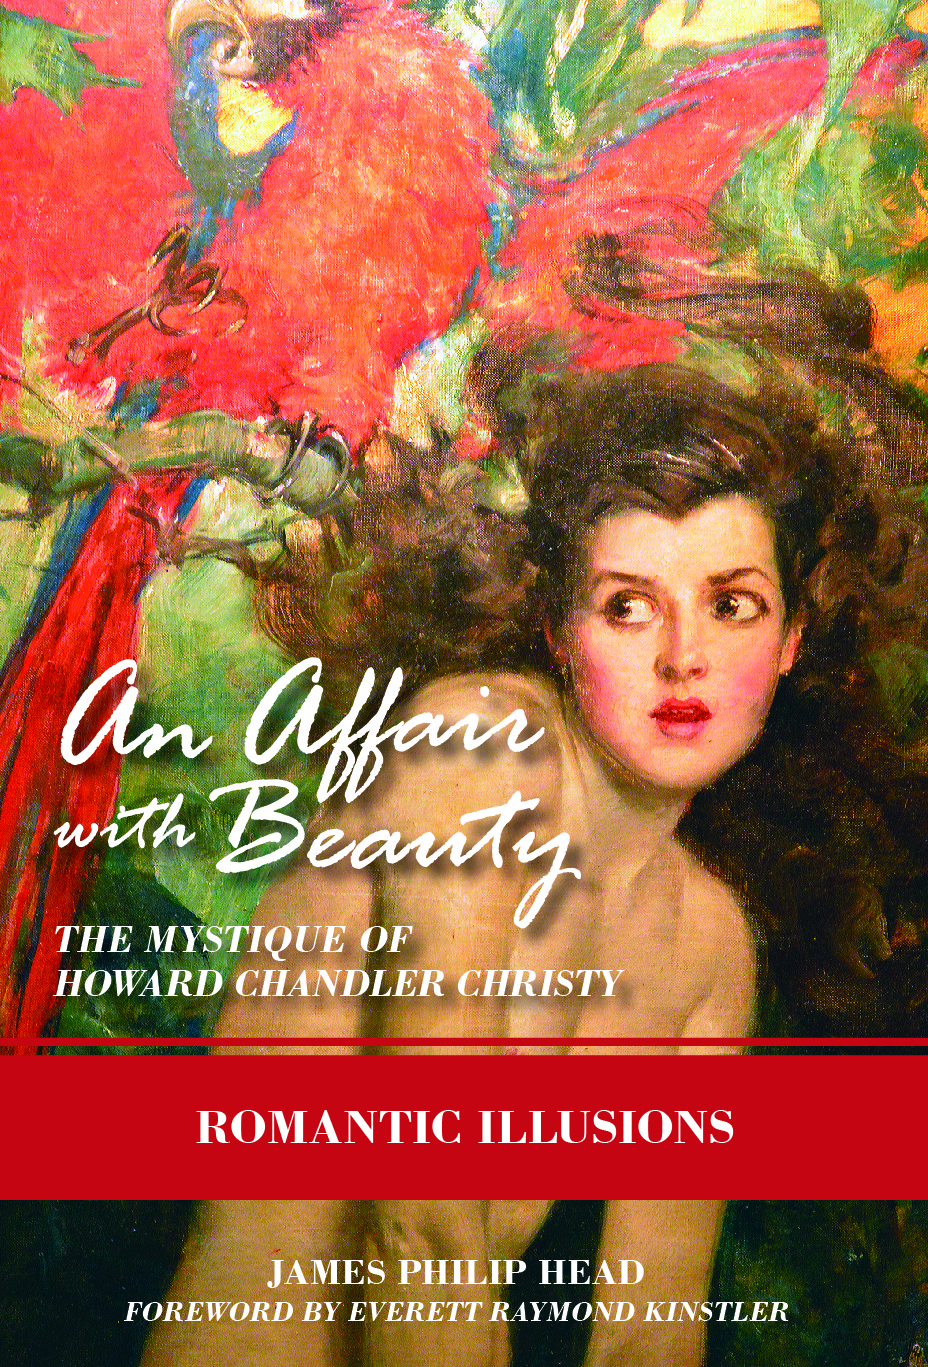 Romantic Illusions is the second book in the trilogy, An Affair With Beauty by James Philip Head